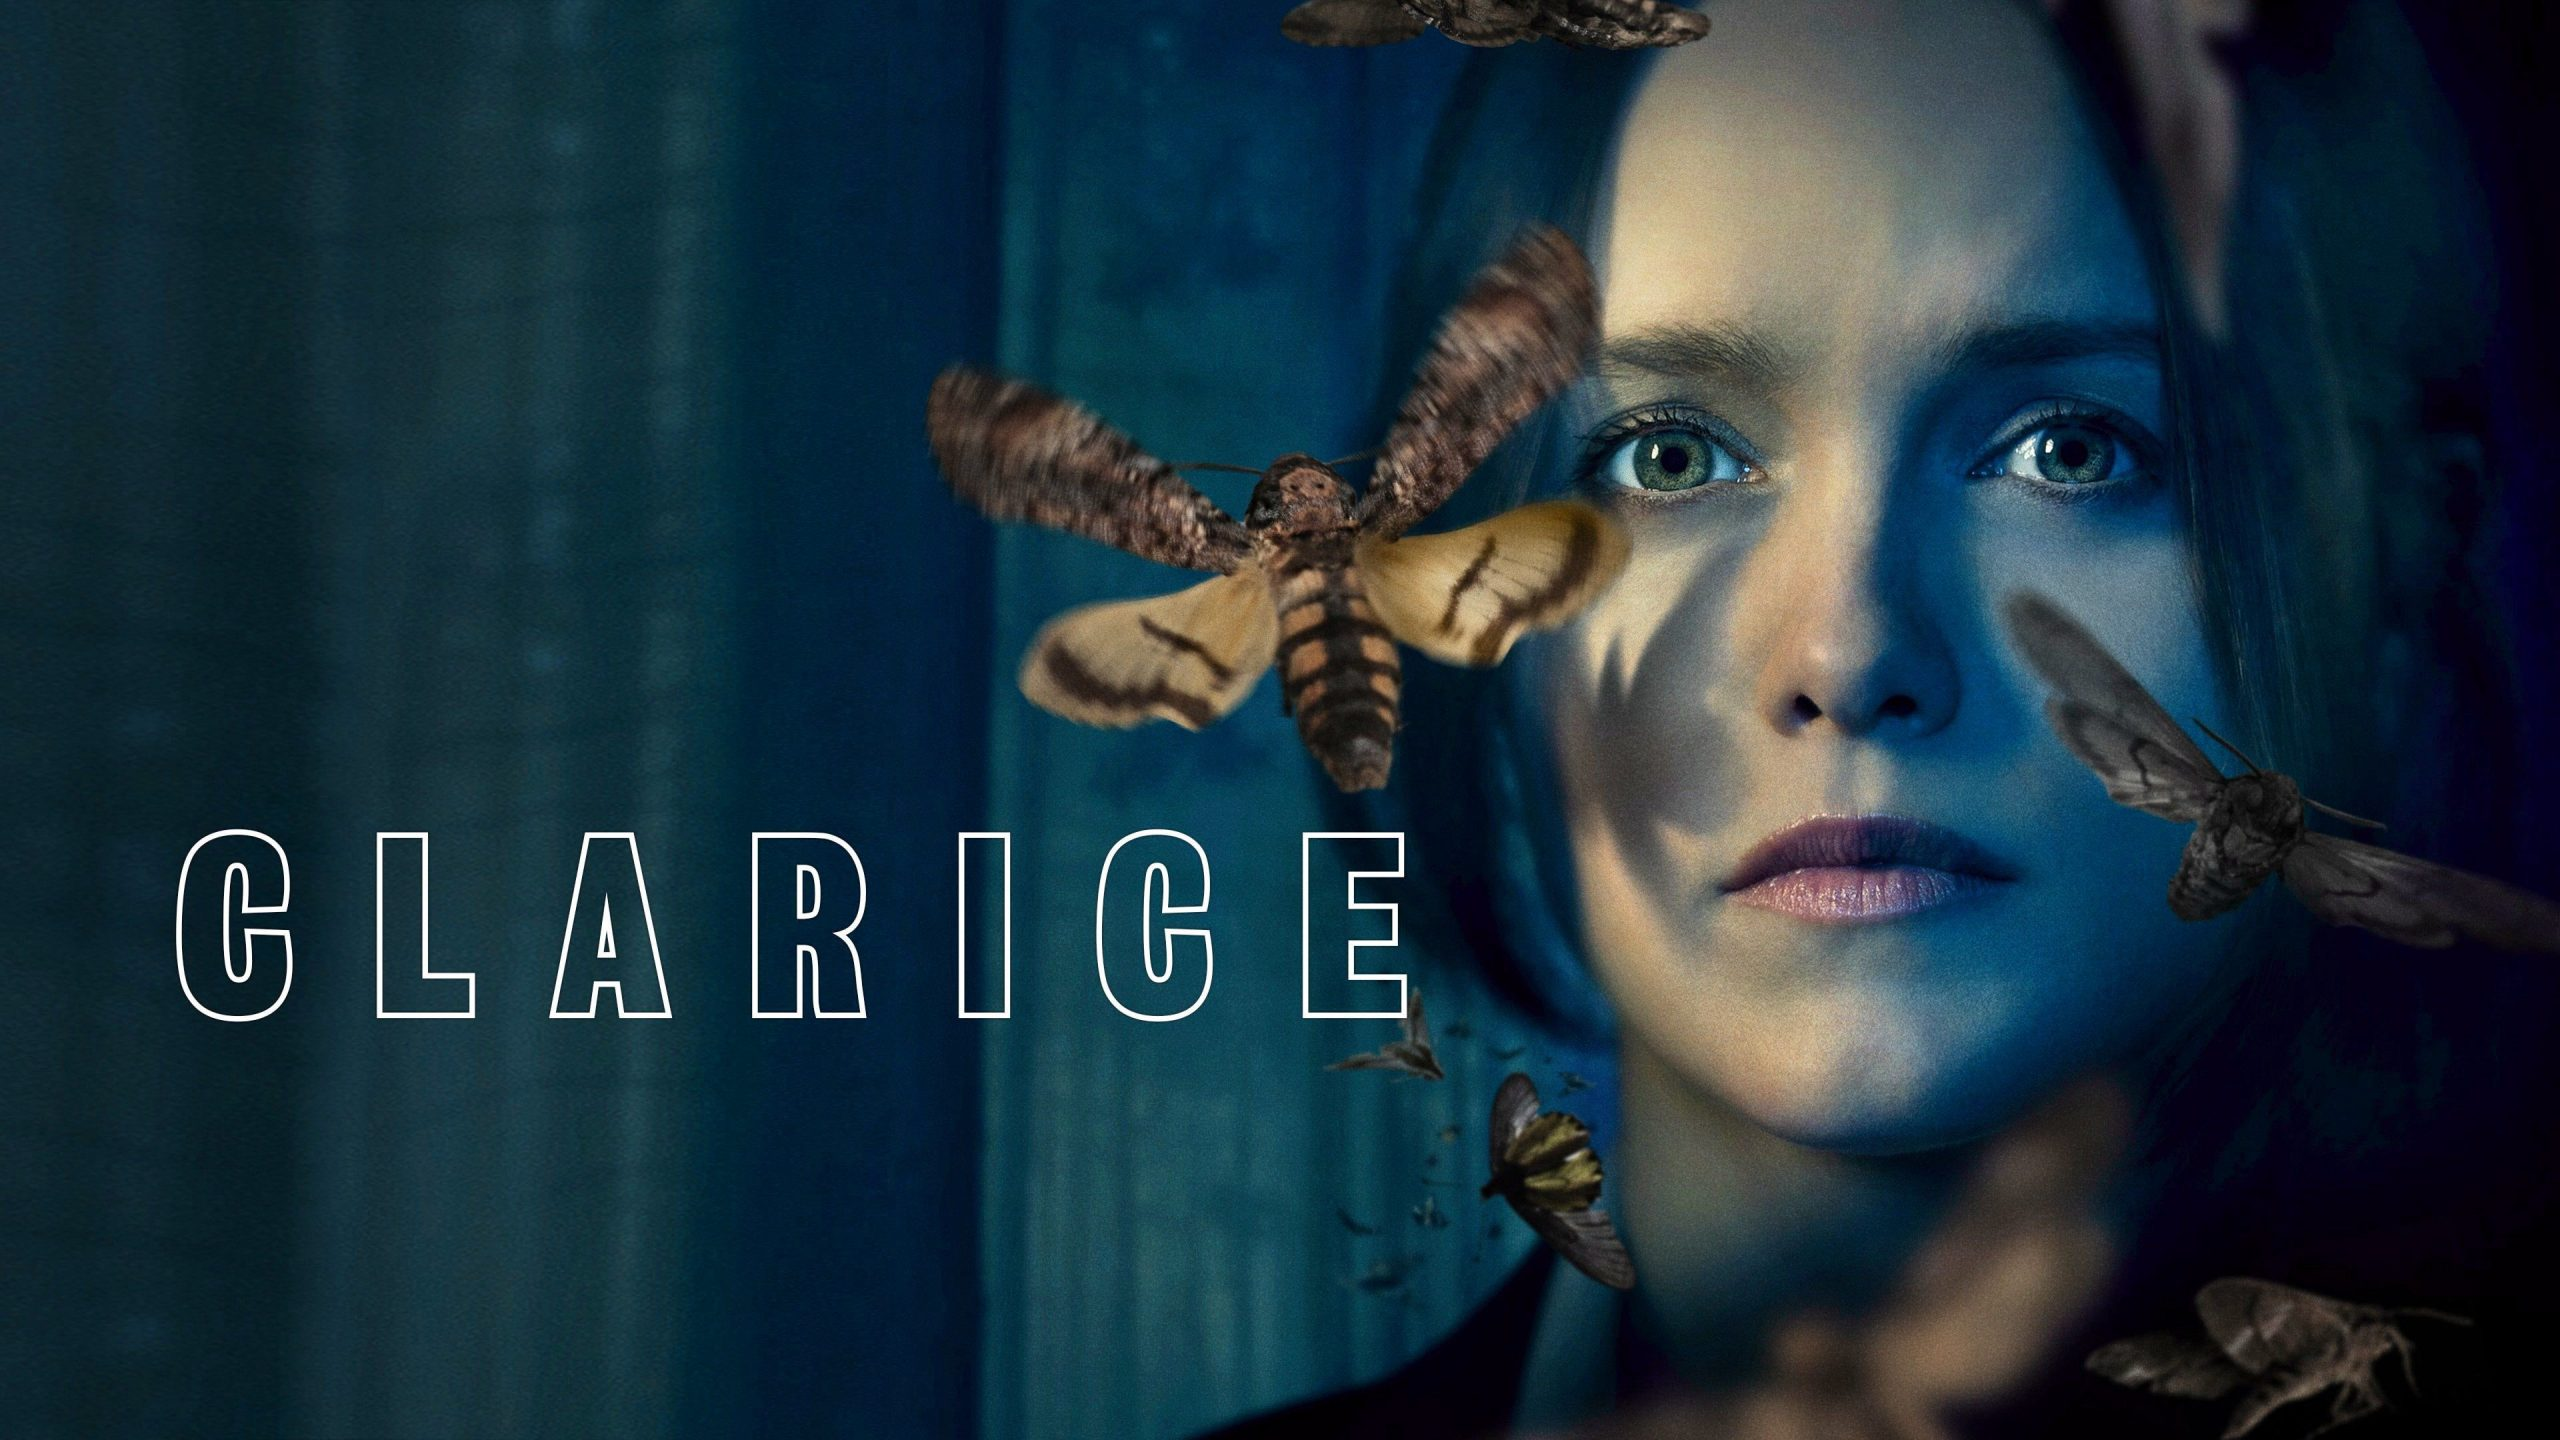 Clarice season 1 episode 2 Release Date, Preview and Recap